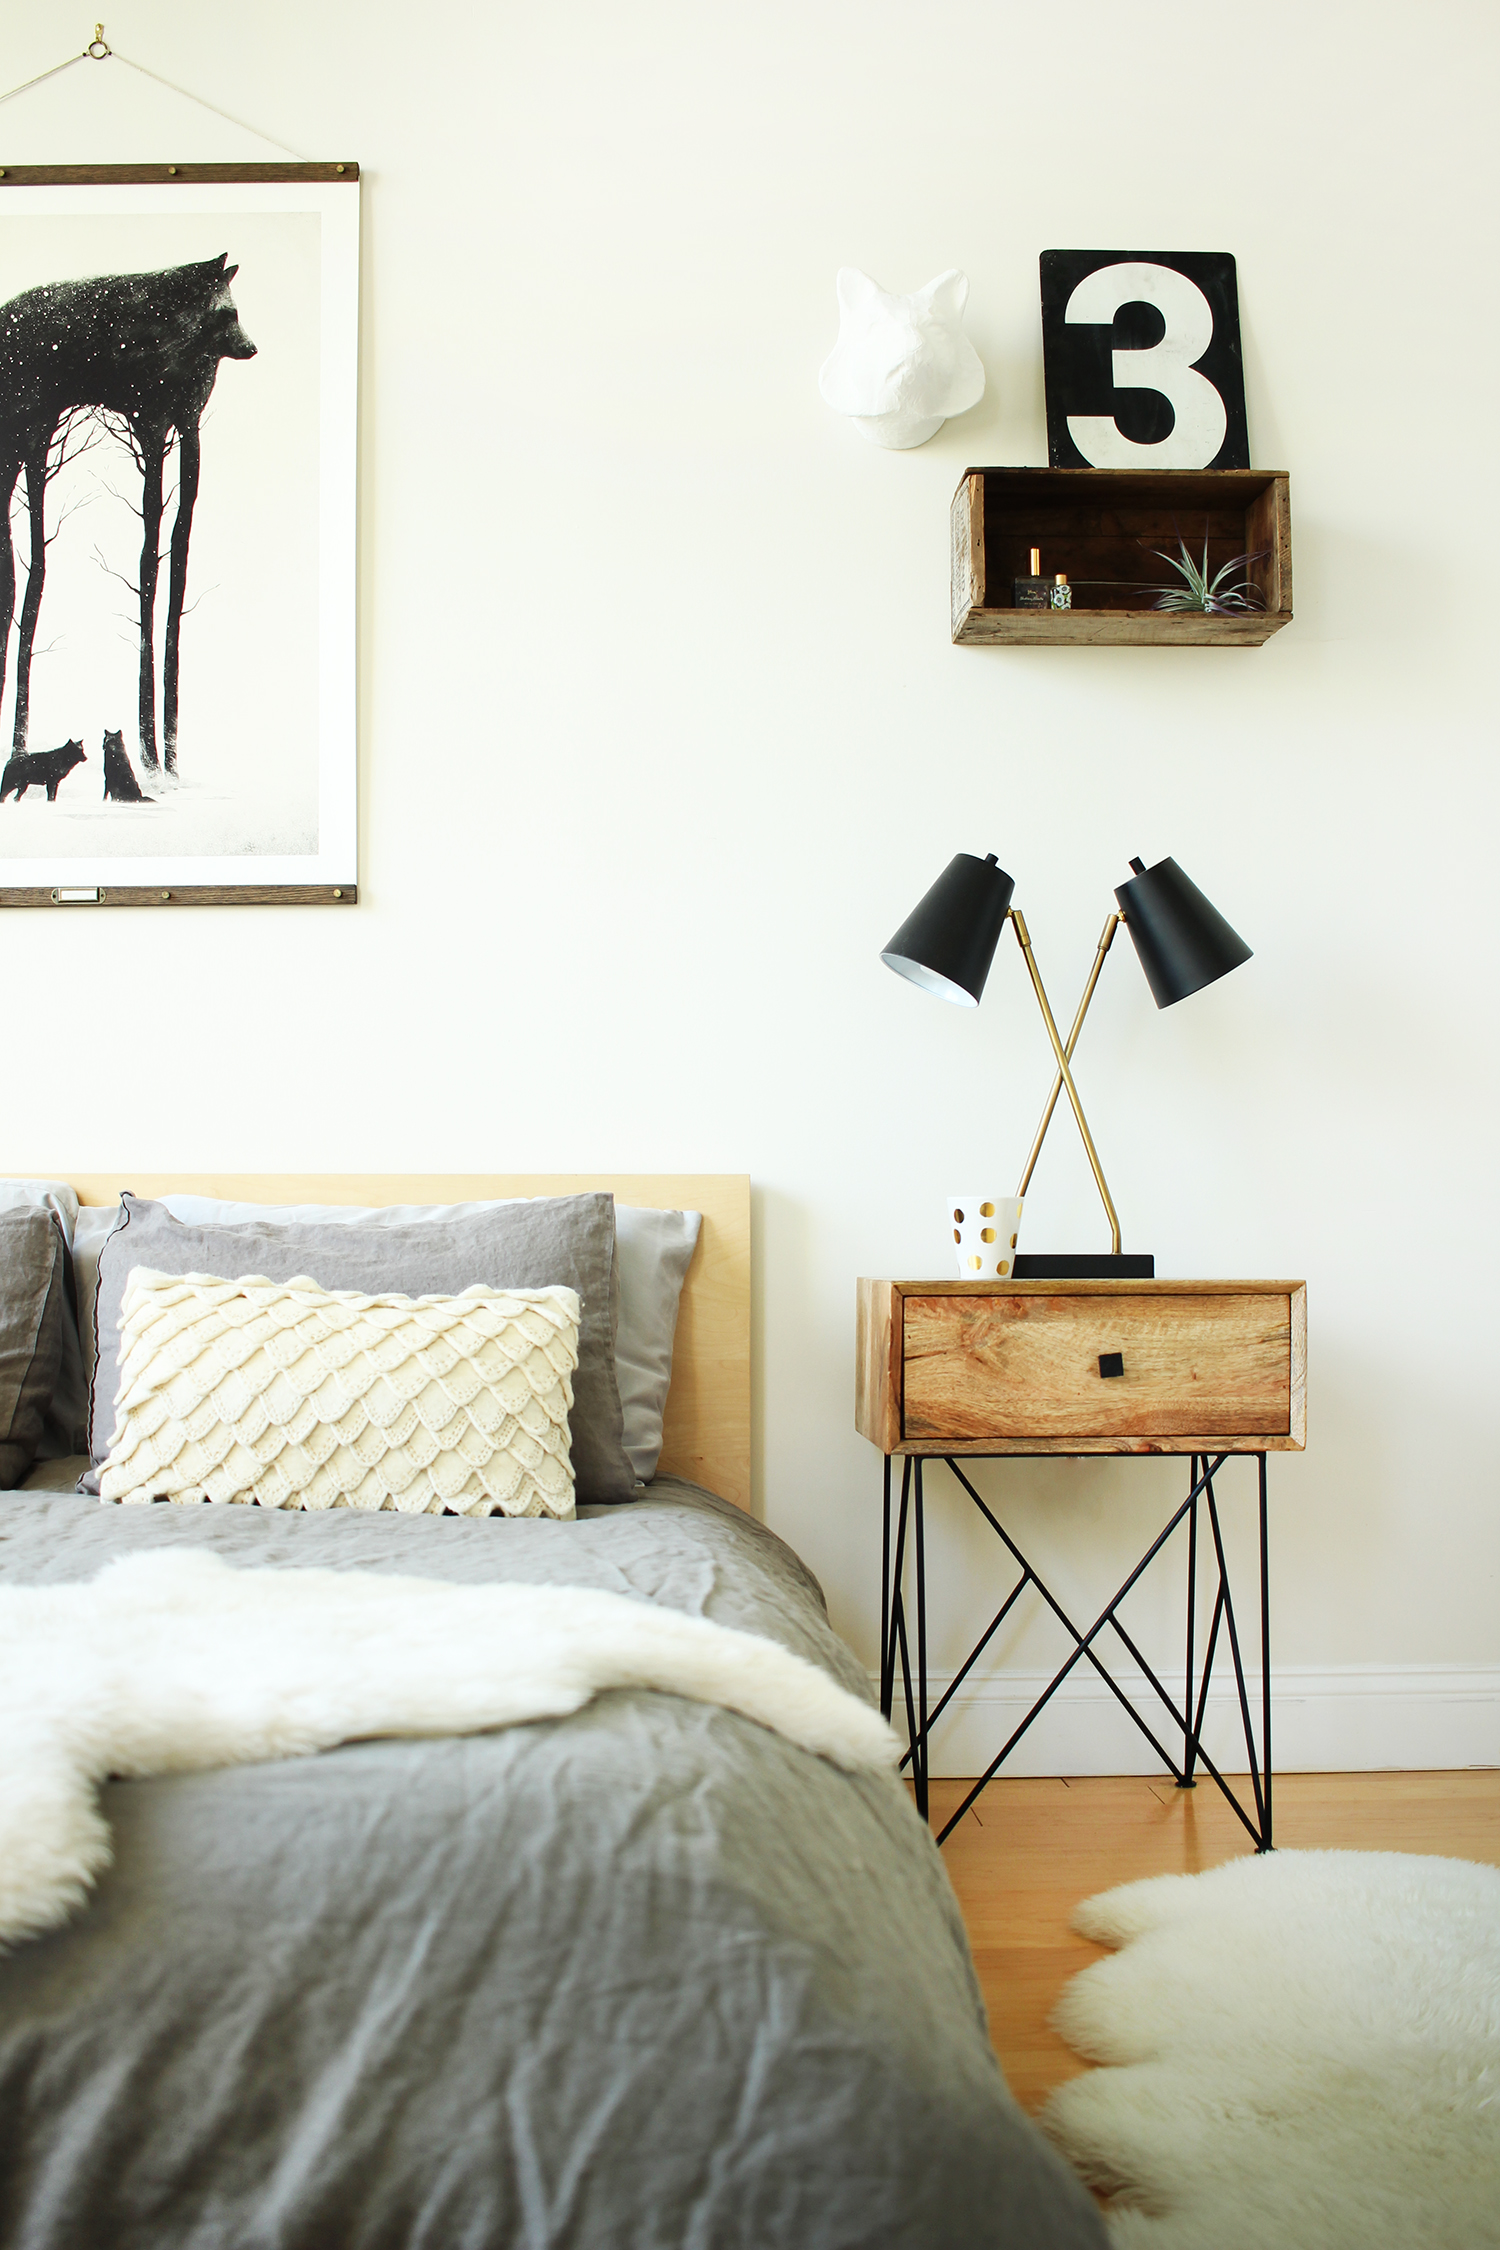 Karen's Bedroom : Art by Dan Burgess (Society 6) : Hanger by Gritty City Goods